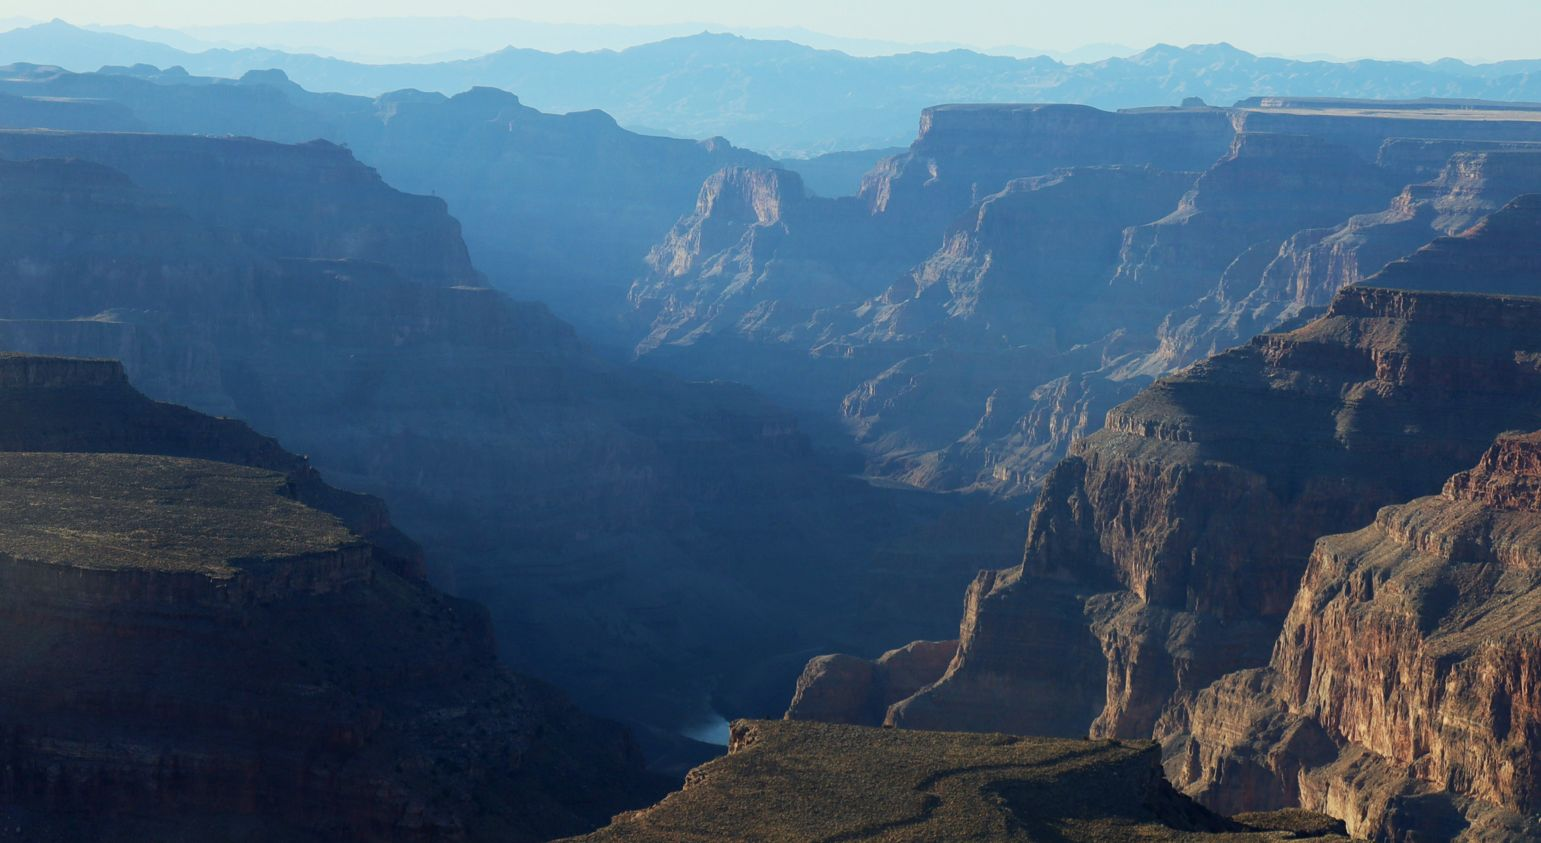 Warm sunny weather creates a bluish mist over the walls of the Grand Canyon West.